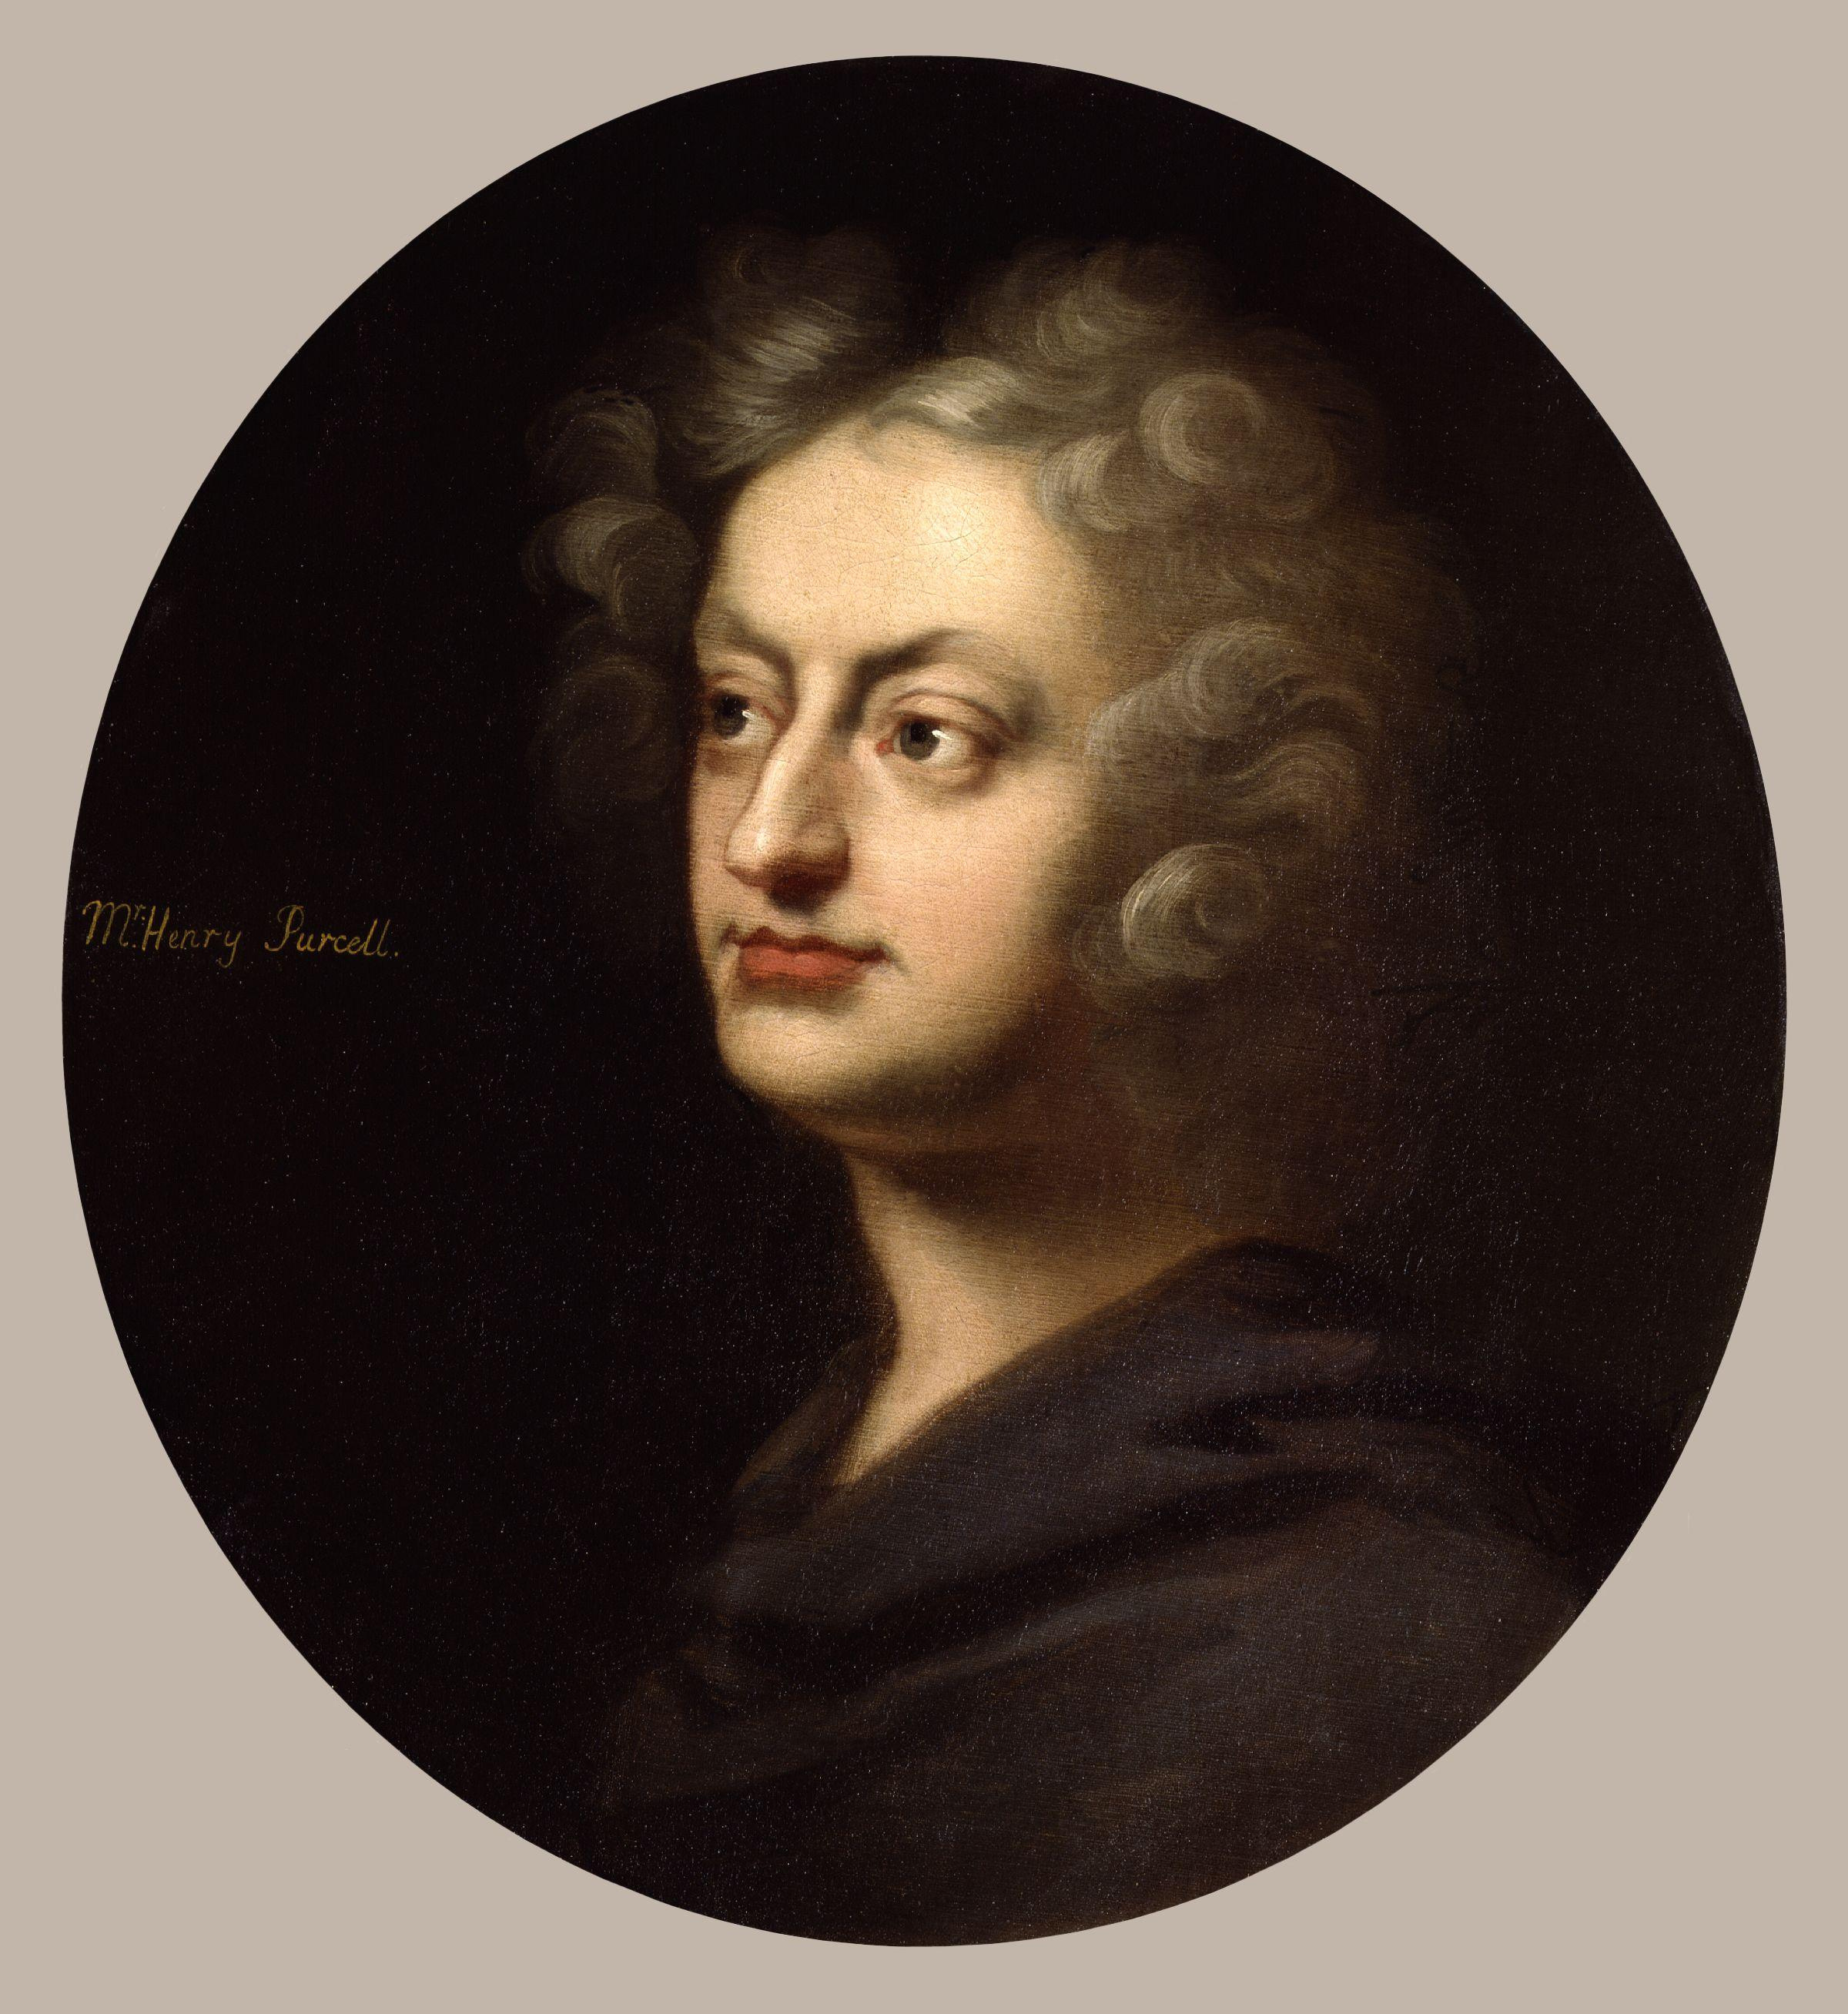 Henry Purcell by John Closterman